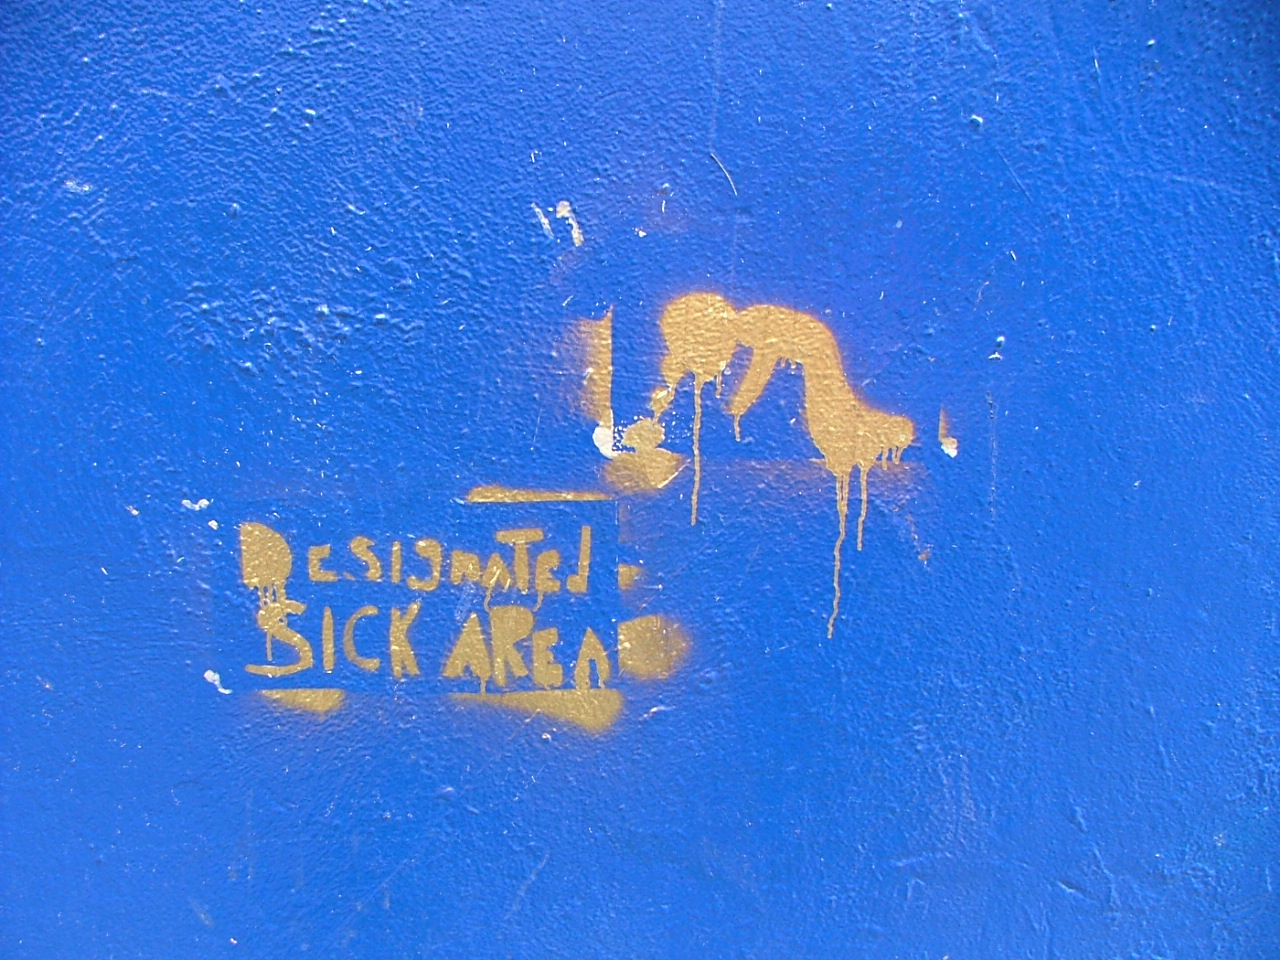 Designated Sick Area - Outside one of Dublins dodgiest nightclubs (Club M)!